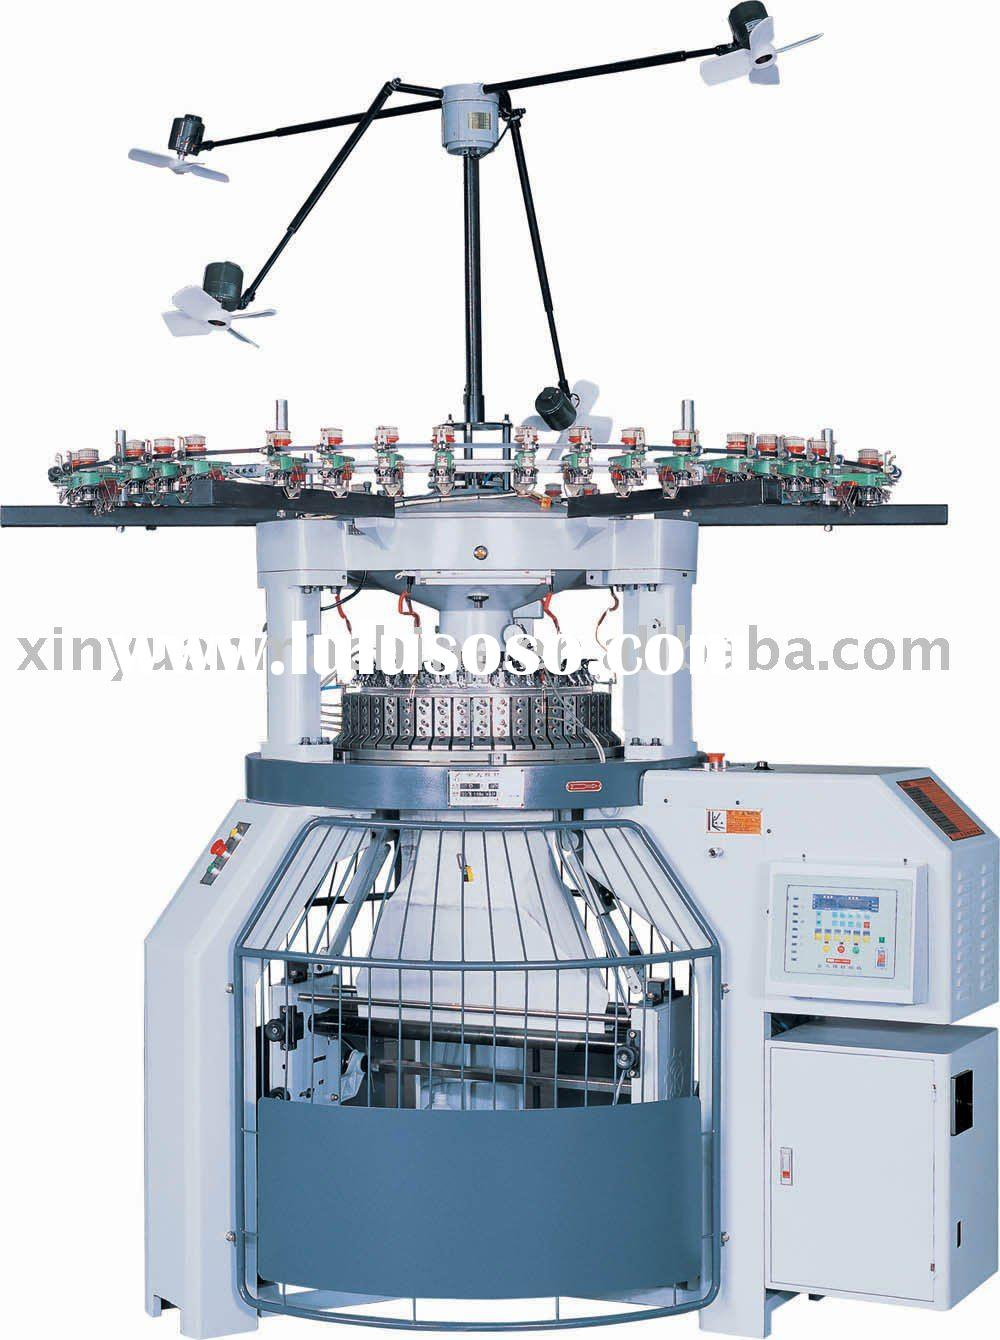 Knitting Oil Specifications : Double body size circular knitting machine for sale